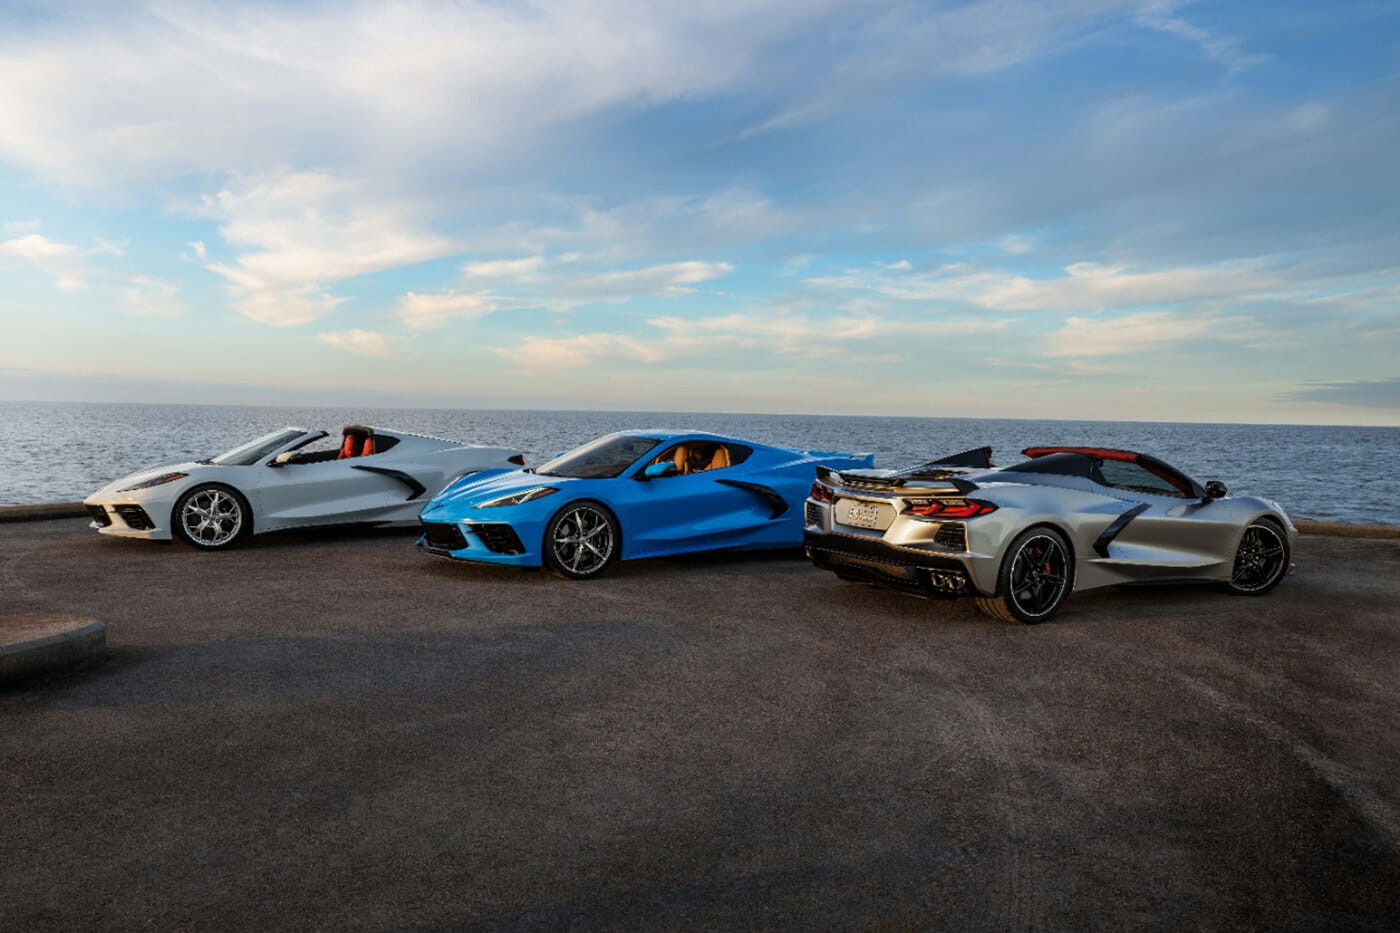 The 2021 Corvette Stingray is a head-turner out in San Francisco